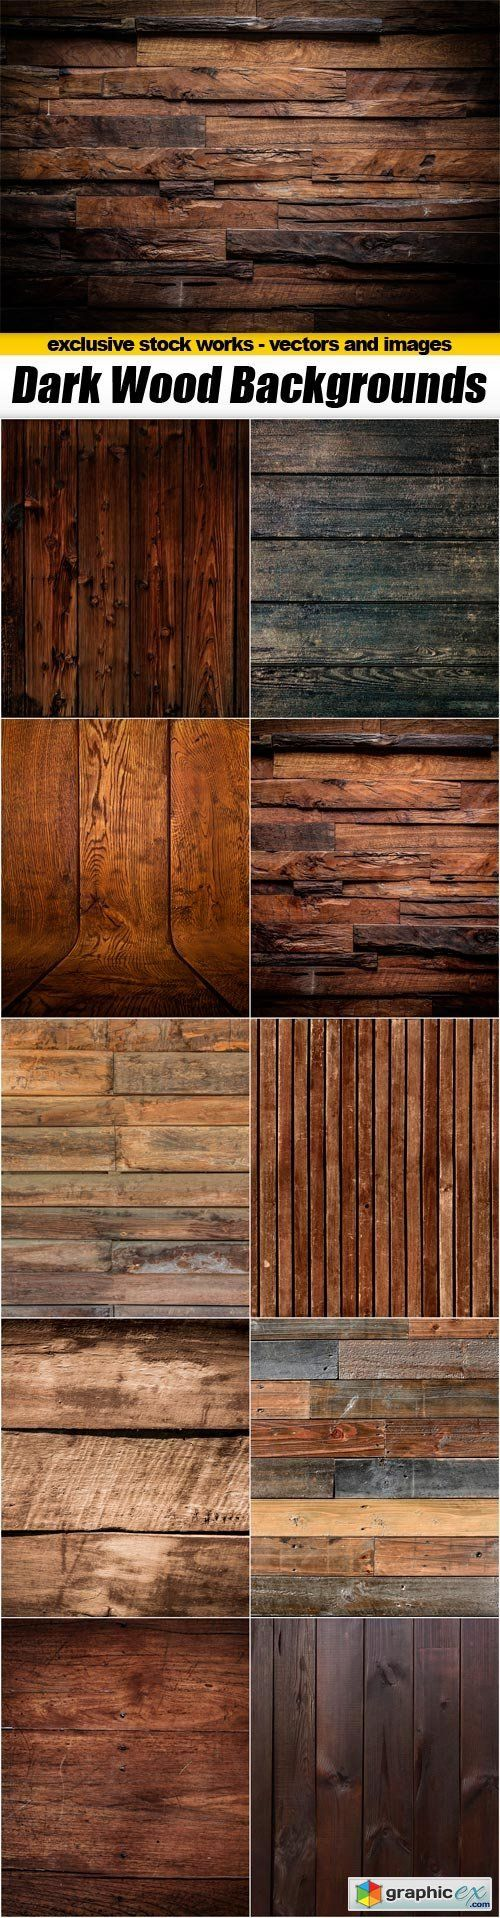 Dark Wood Backgrounds  10x JPEGs  stock images